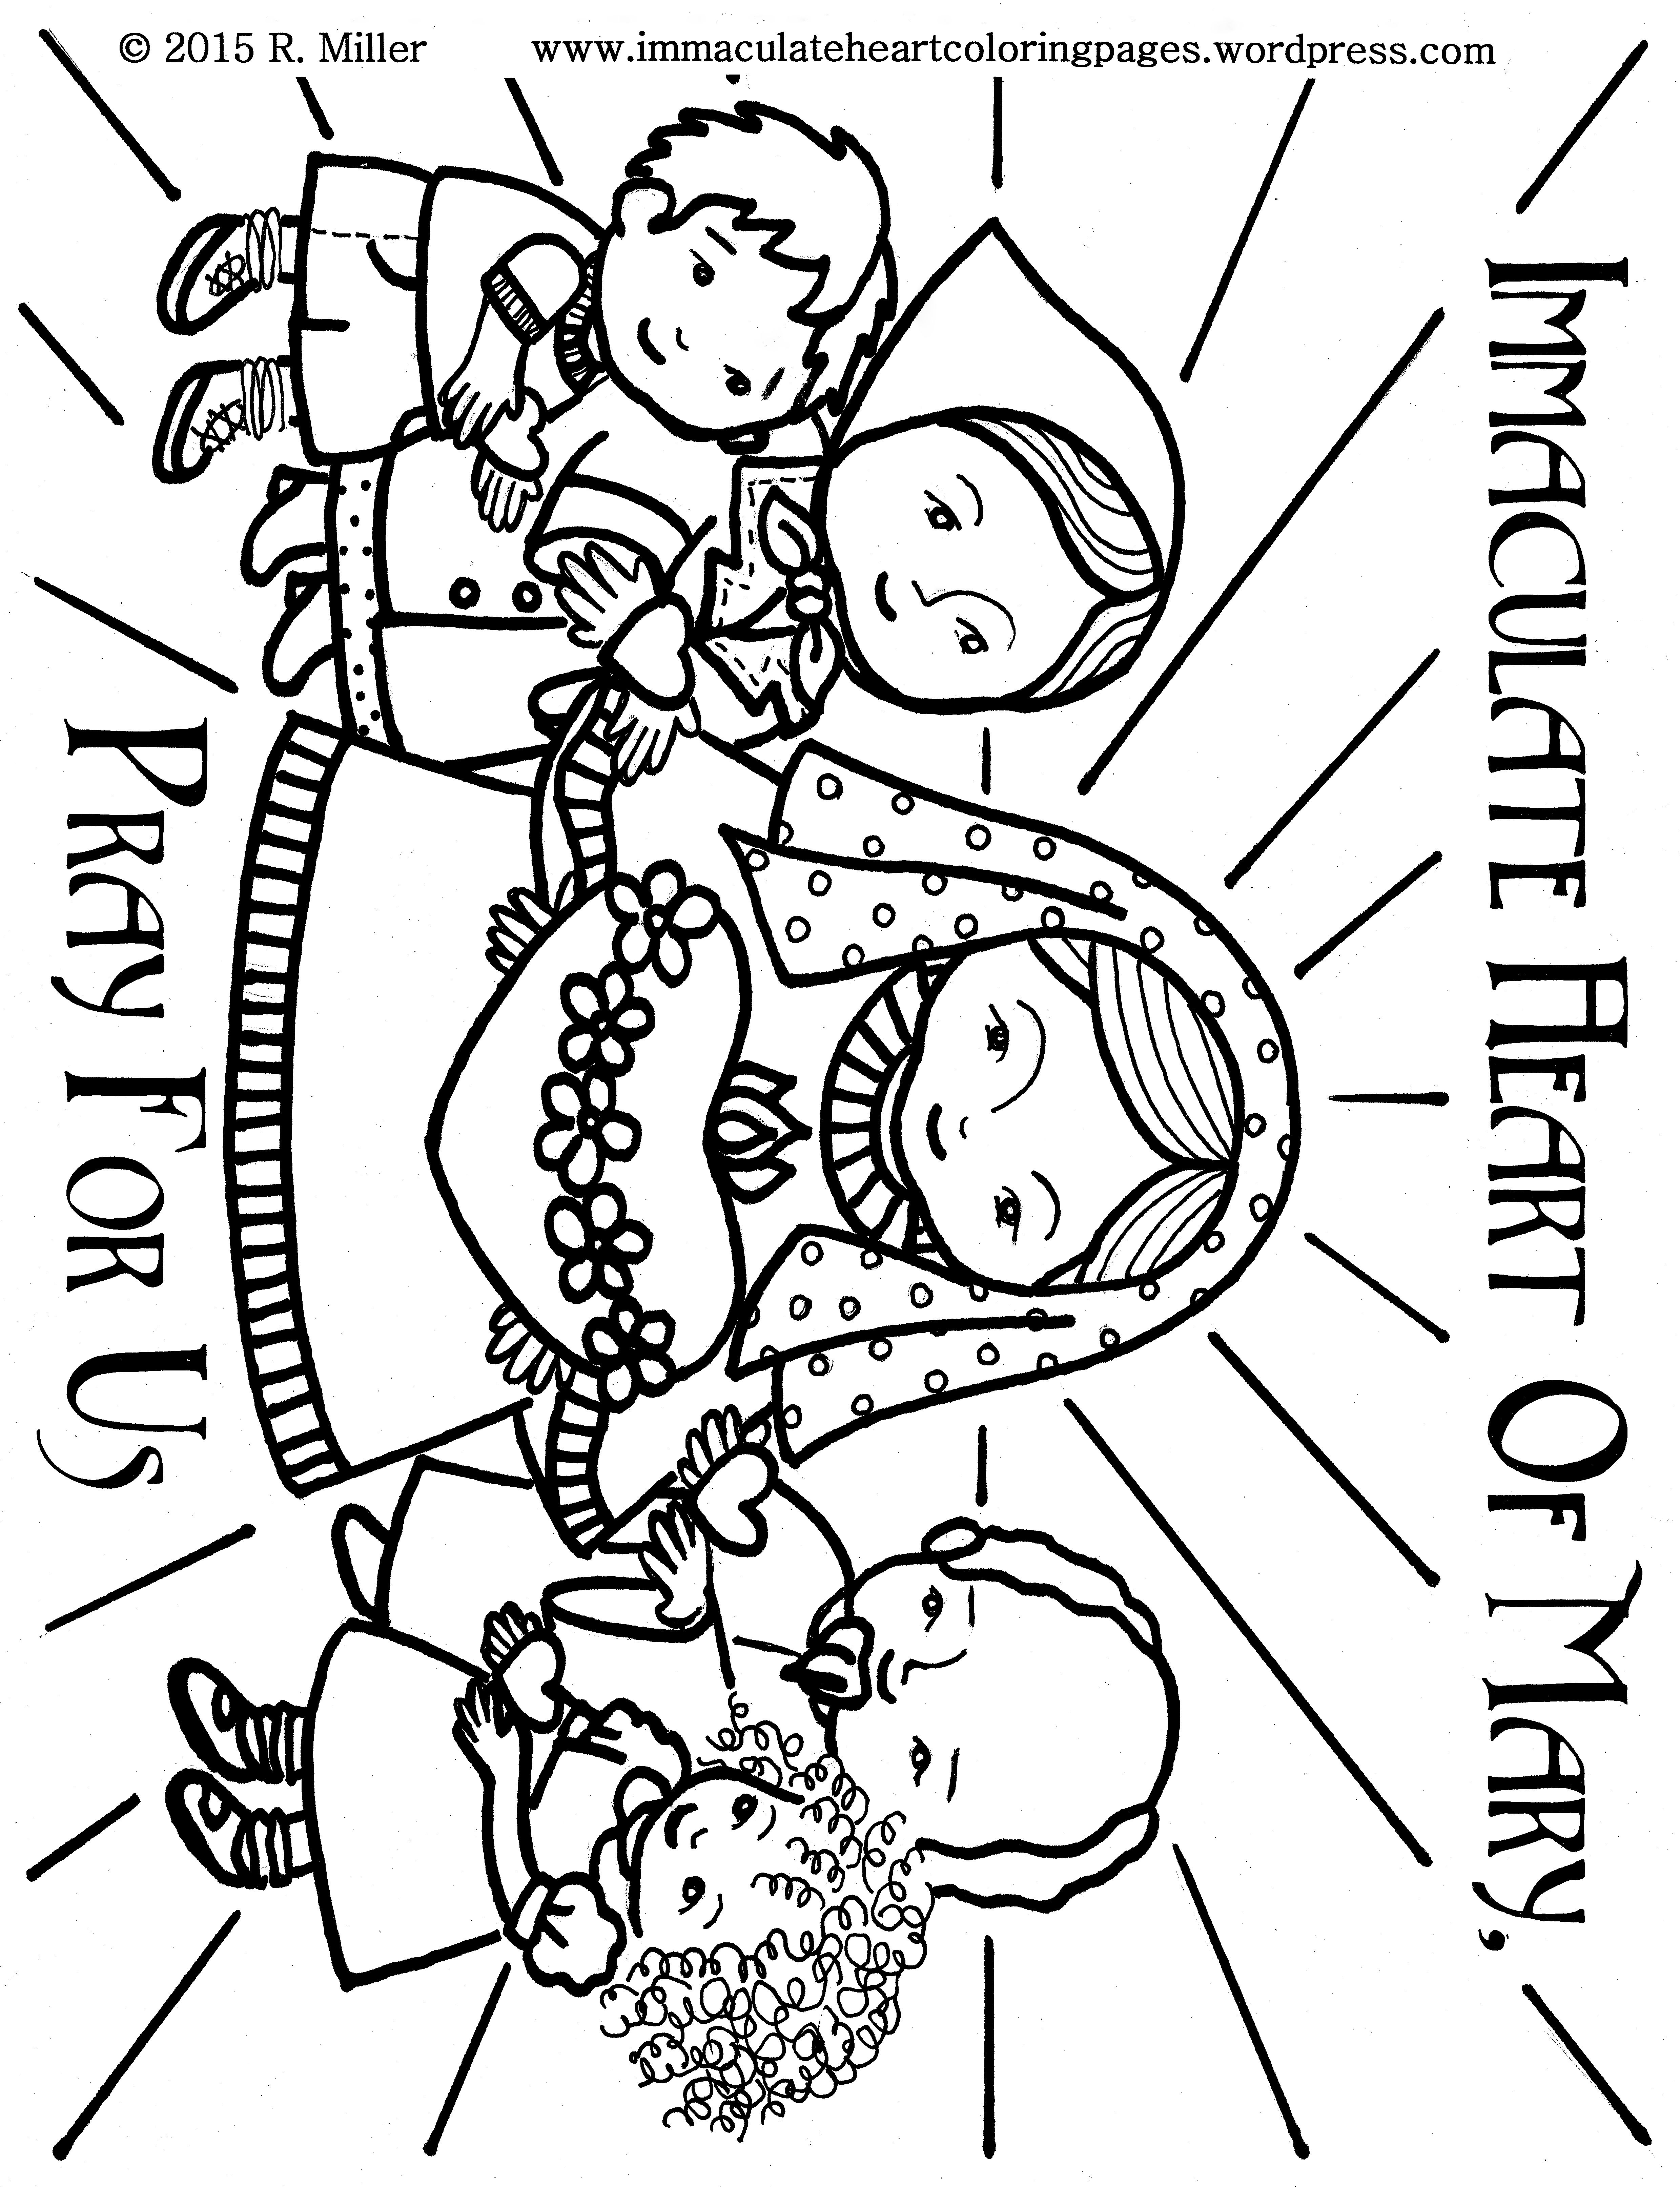 Immaculate Heart Of Mary Pray For Us Coloring Page Free To